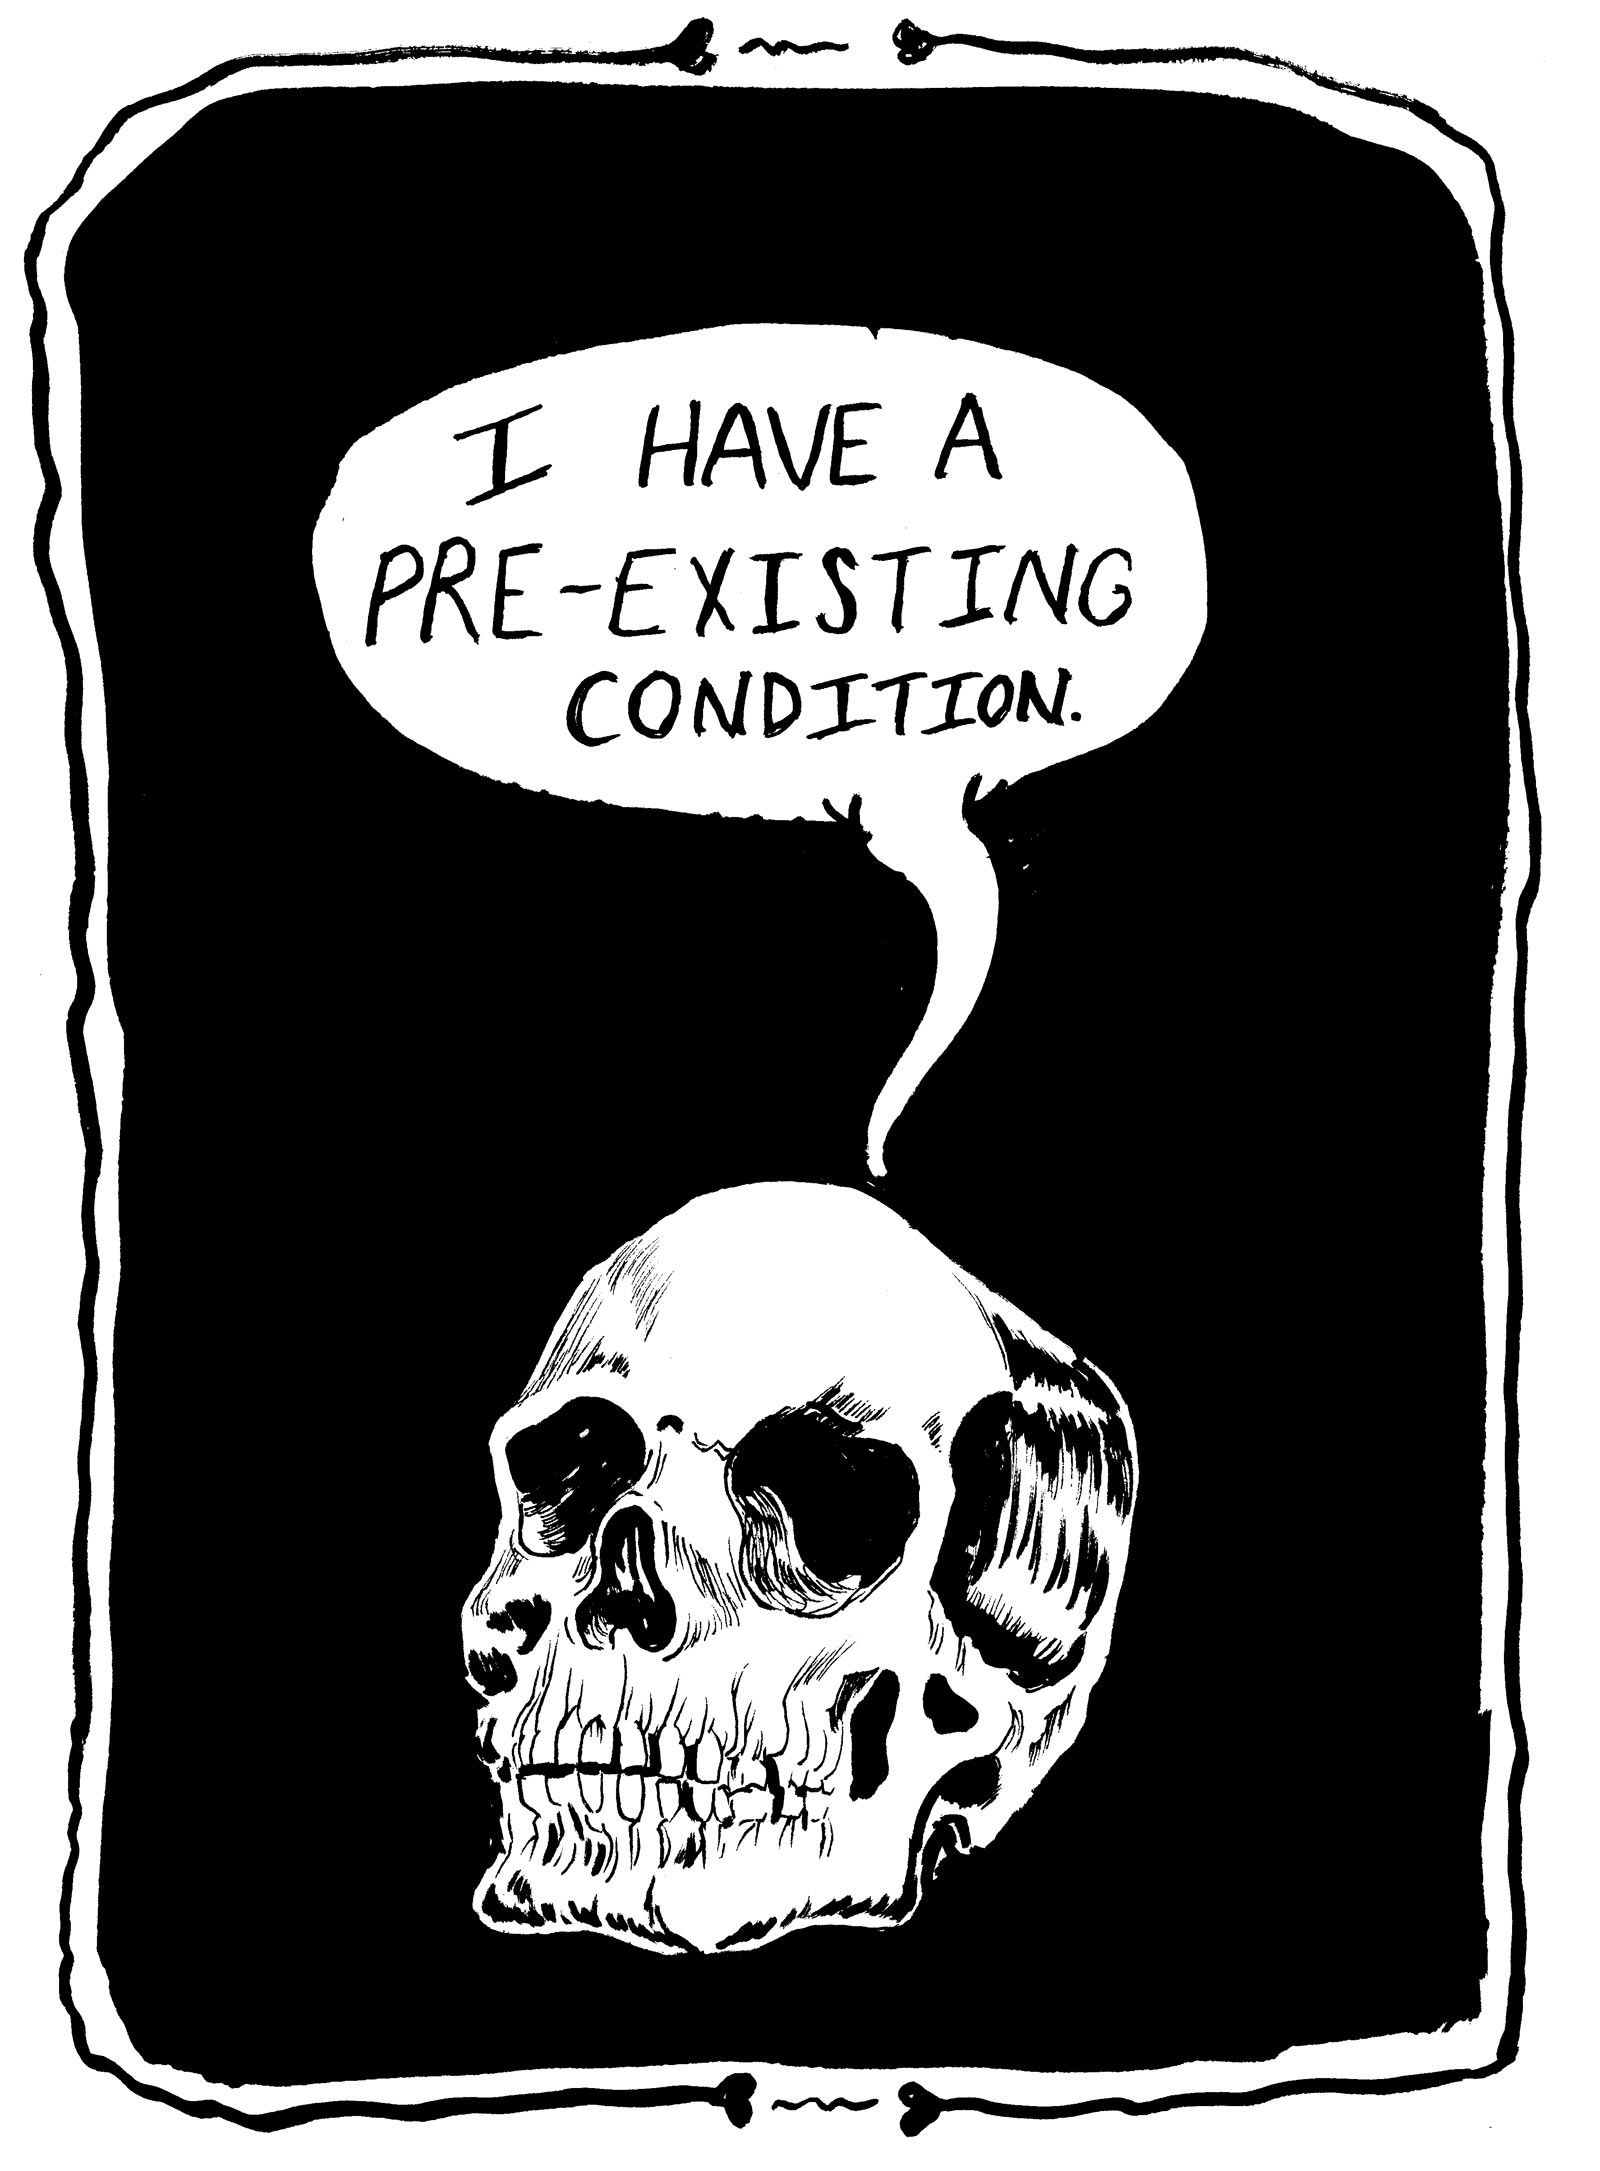 Pre-Existing Condition image